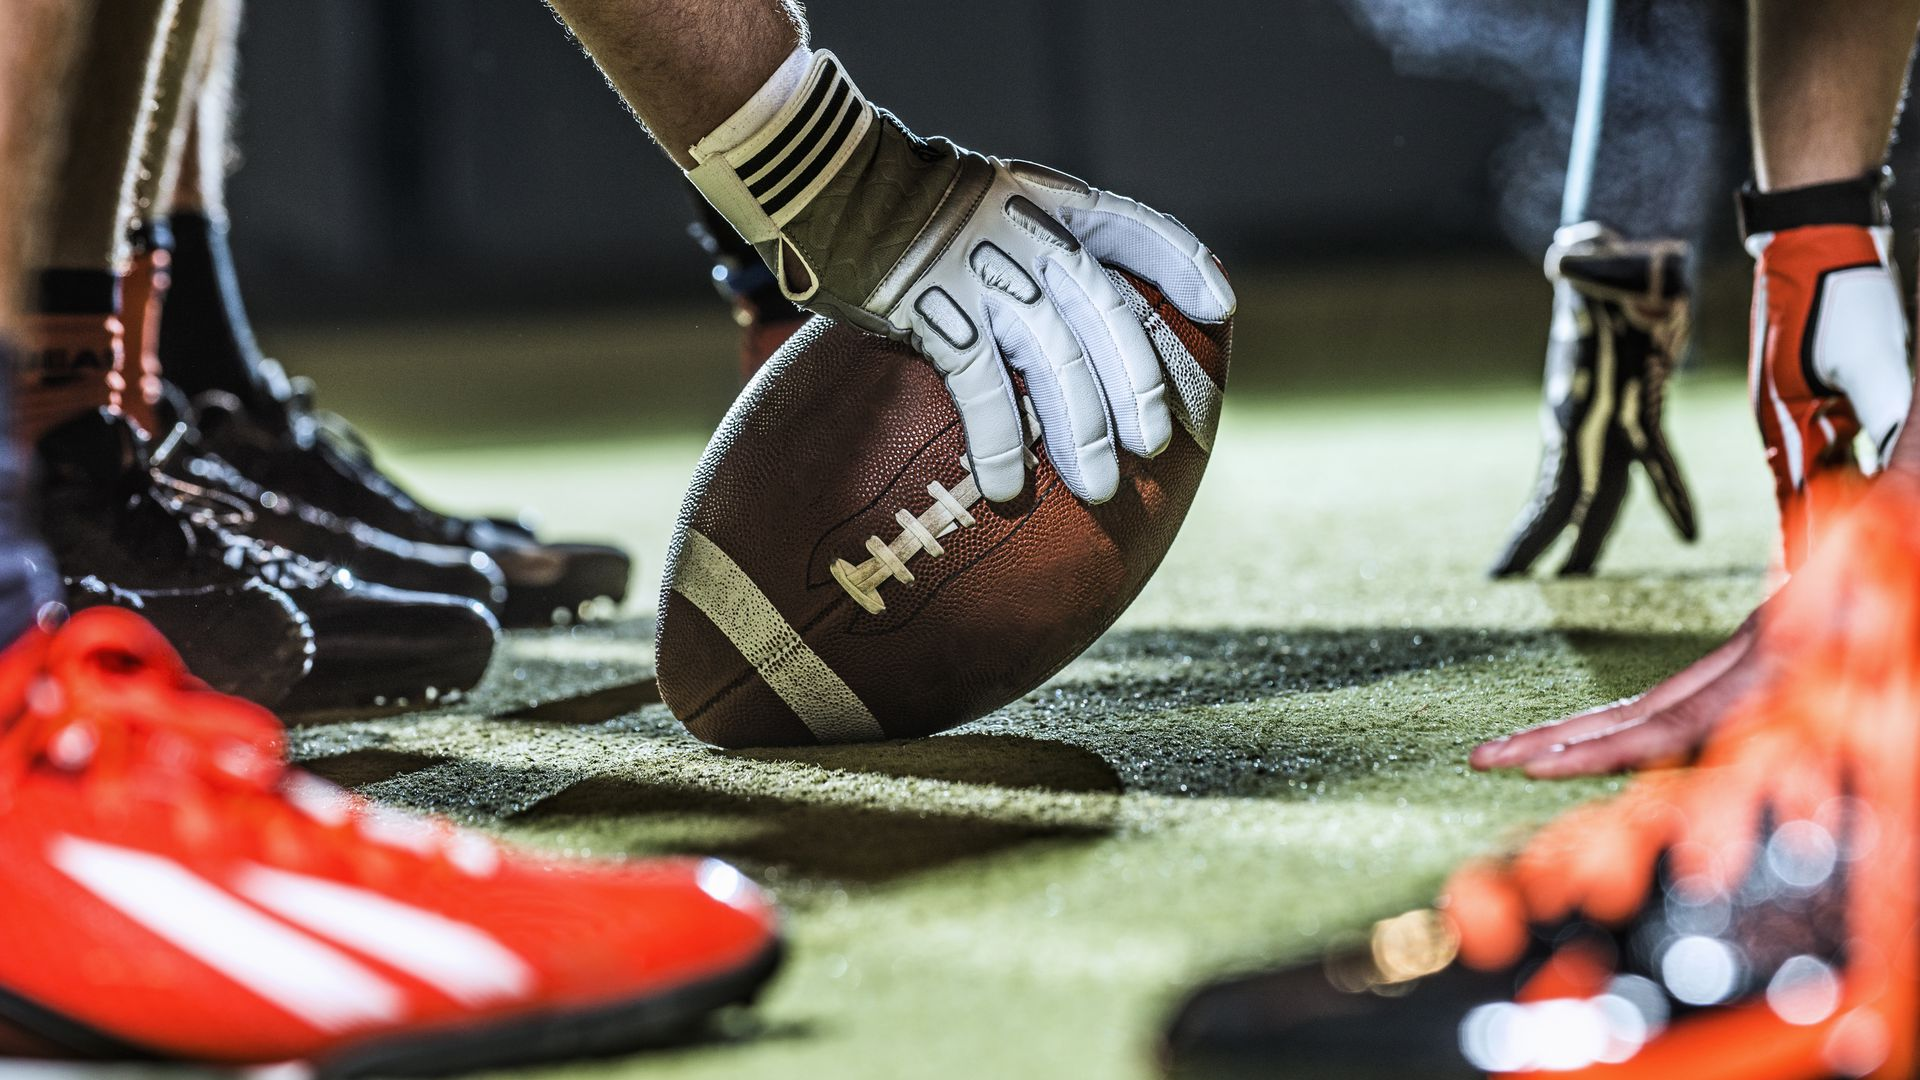 A football player with a football on a field getting ready to play